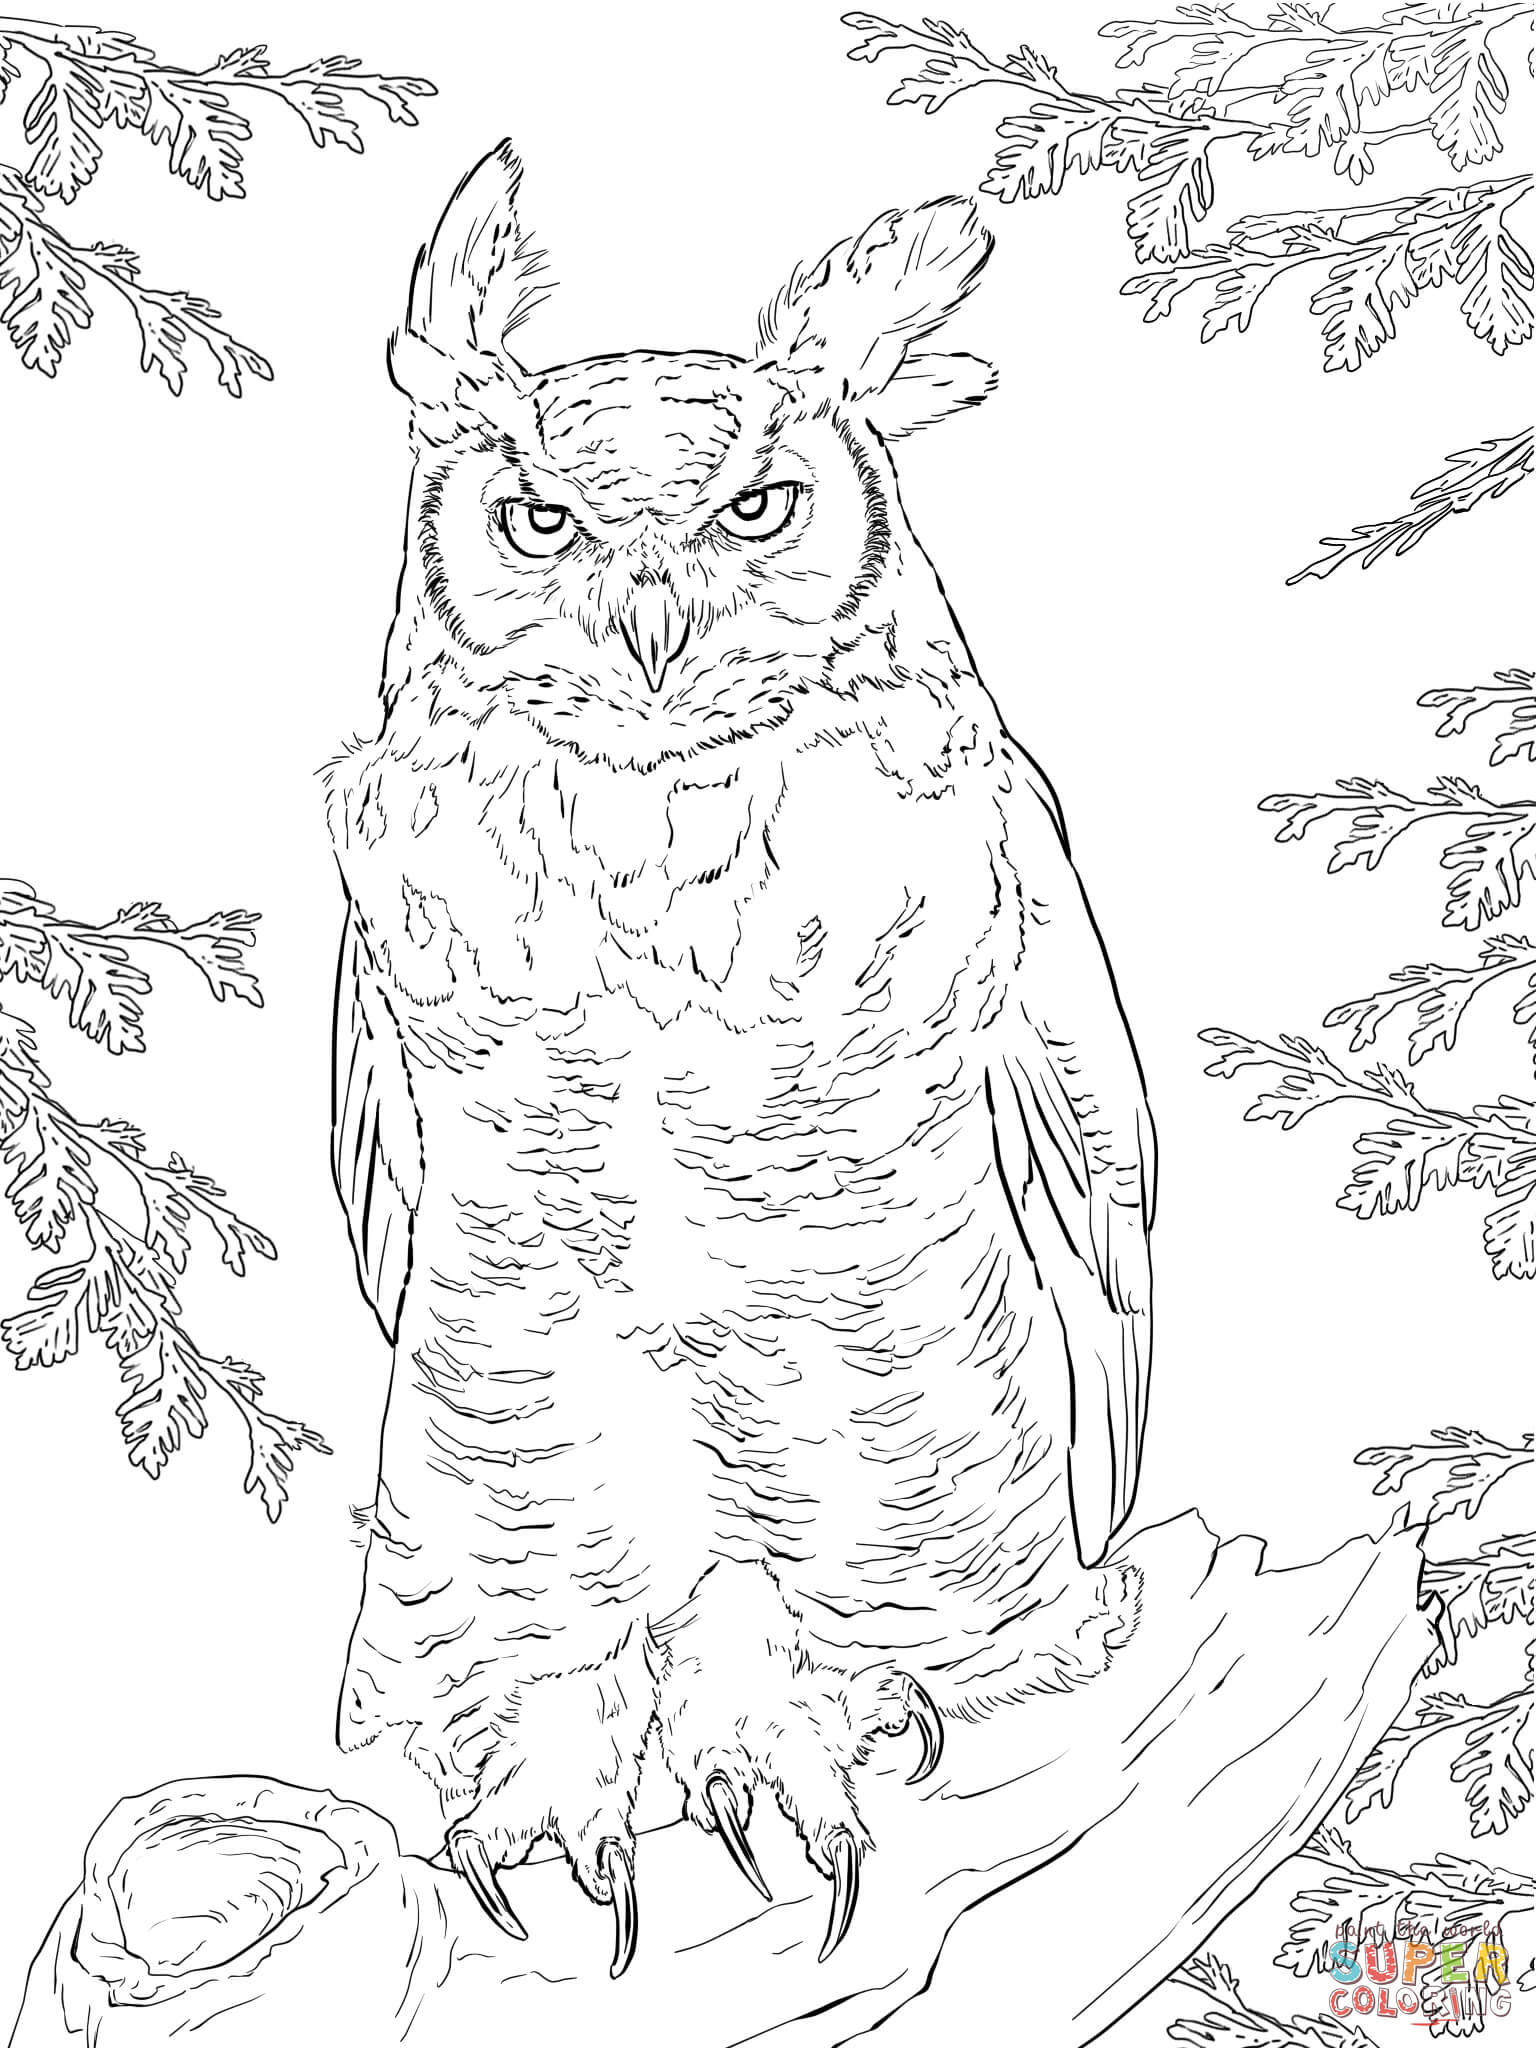 real coloring pages real animal coloring pages coloring home coloring pages real